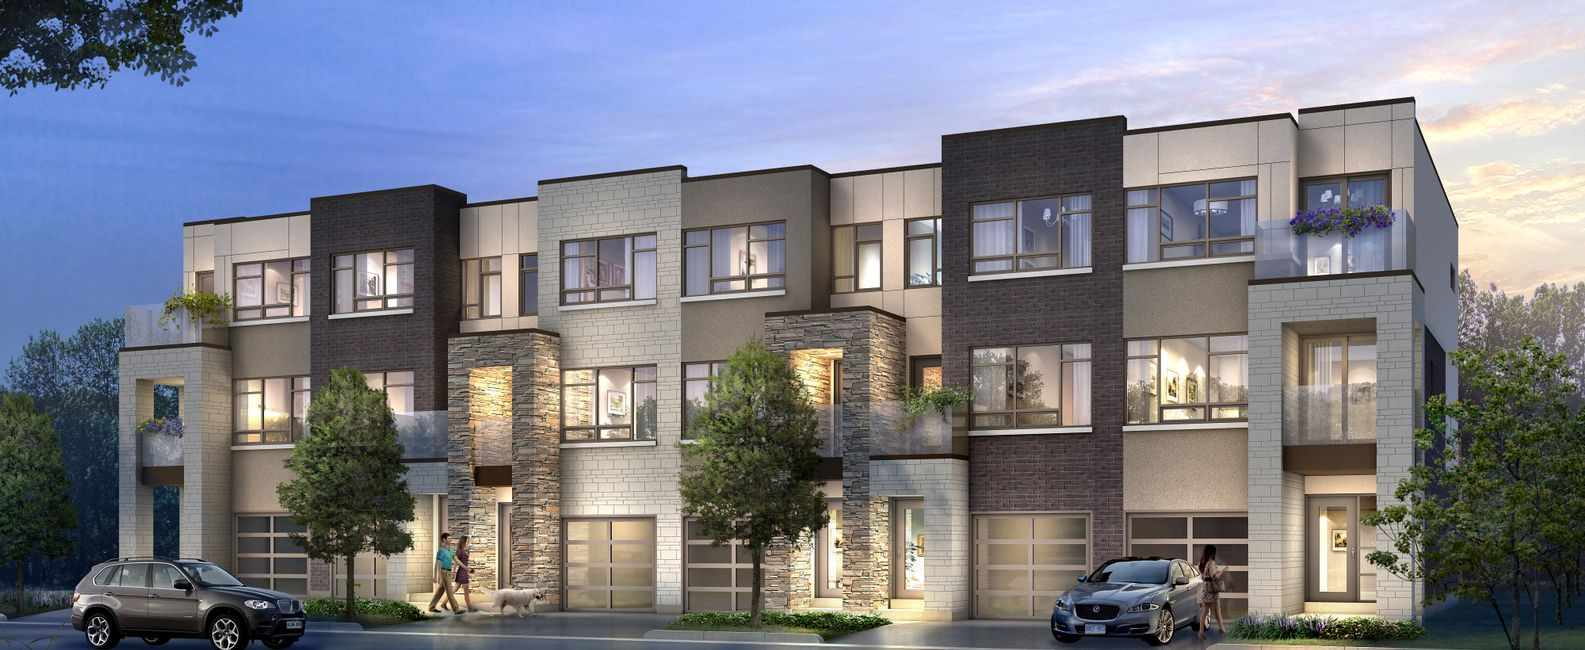 small-adi-development-group-stationwest-condos-burlington-condos-for-sale-exterior3.jpeg